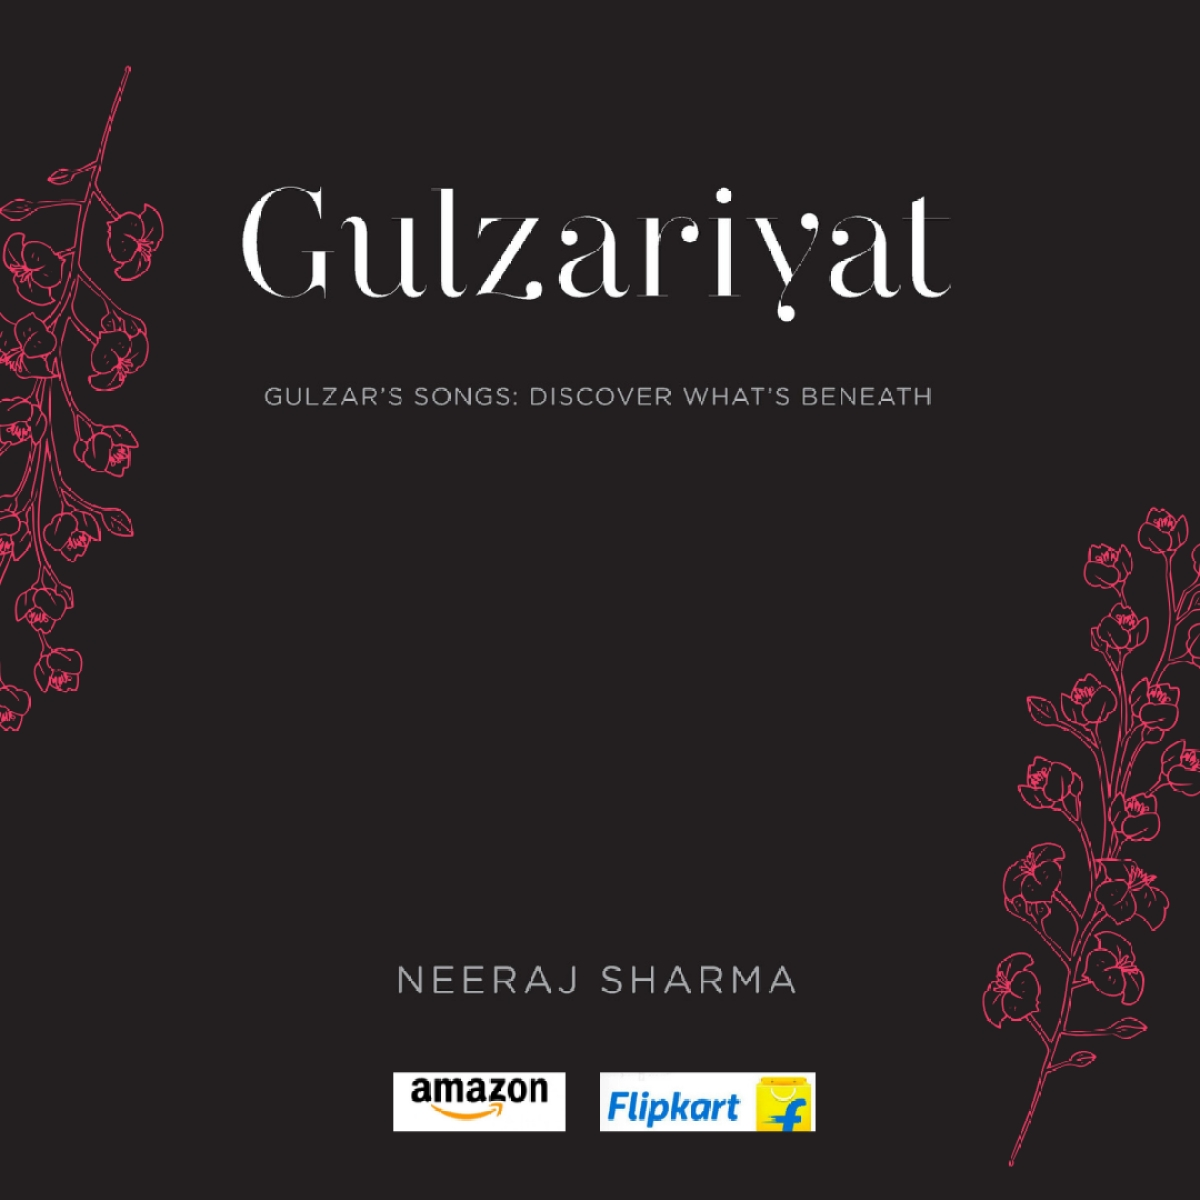 Rediffusion's Neeraj Sharma pens his first book- Gulzariyat